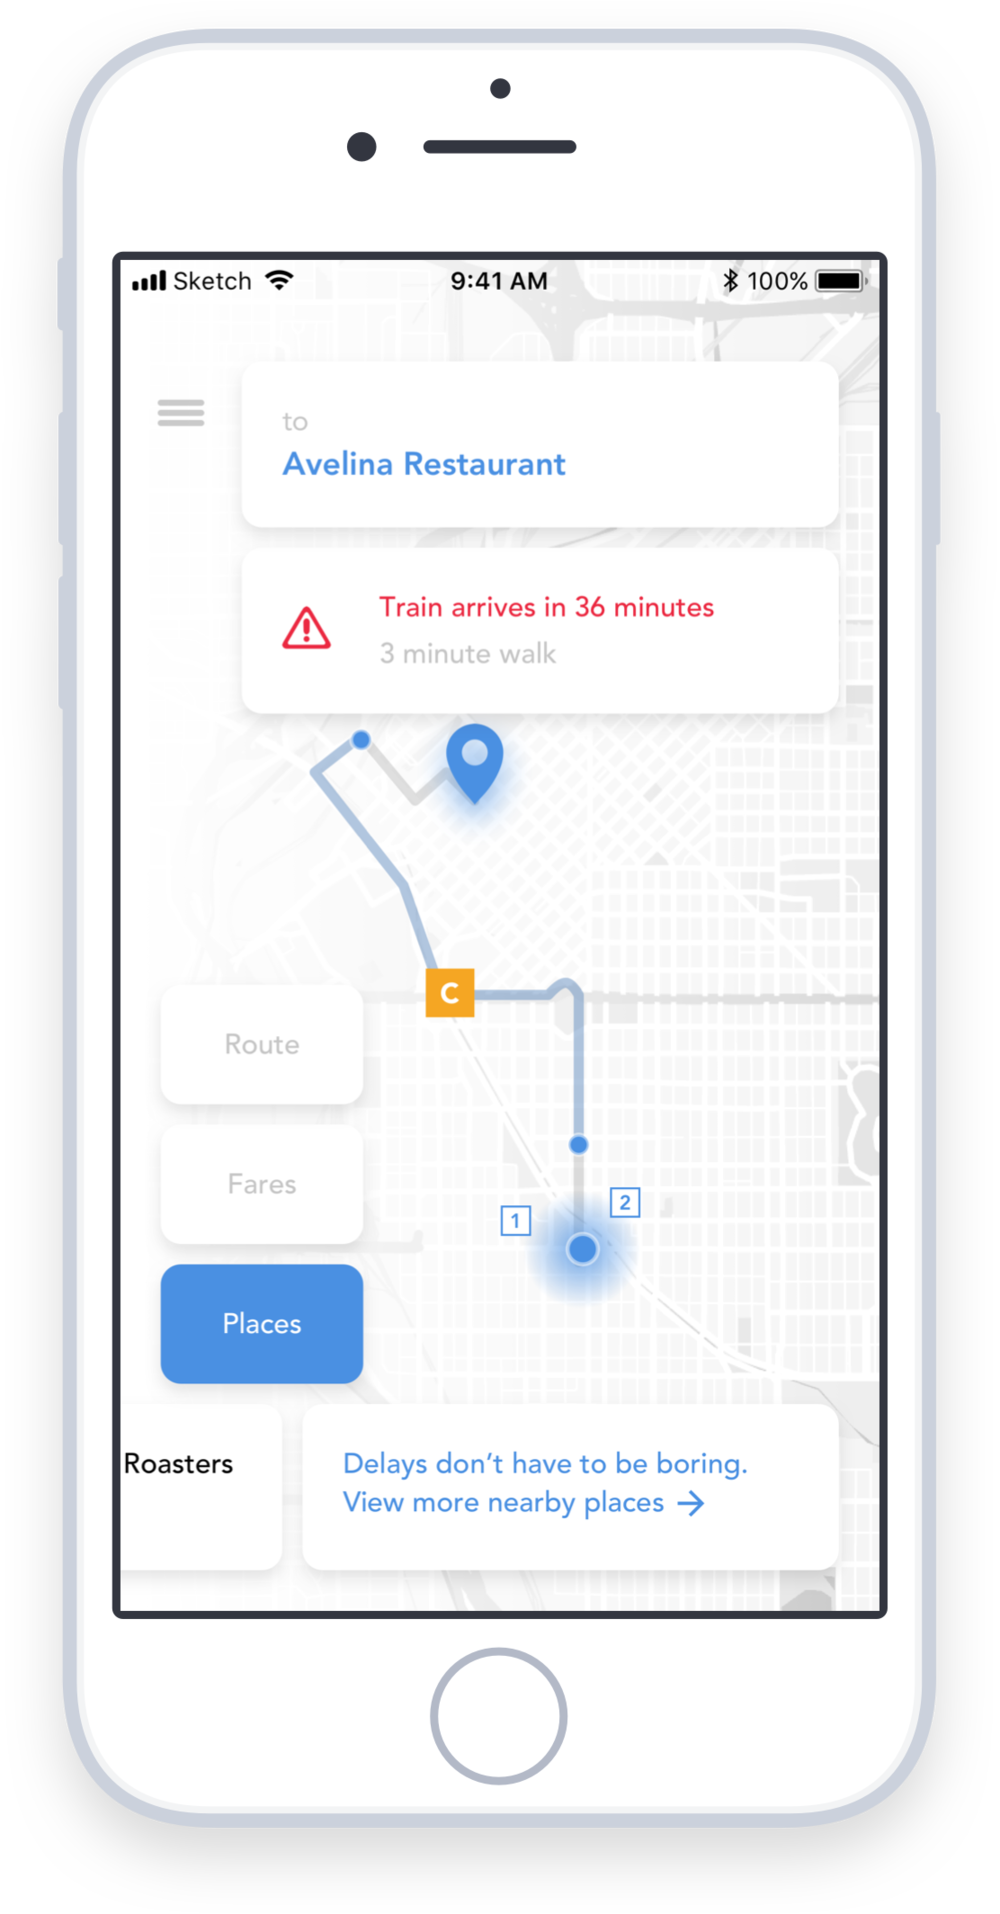 Real time notifications keep riders alerted - RTD Beacon places real time trackers in busses and trains throughout the city, so riders can be kept up to date about delays. If a delay happens on the selected route, RTD Beacon will send a notification letting users know just how much time they have.